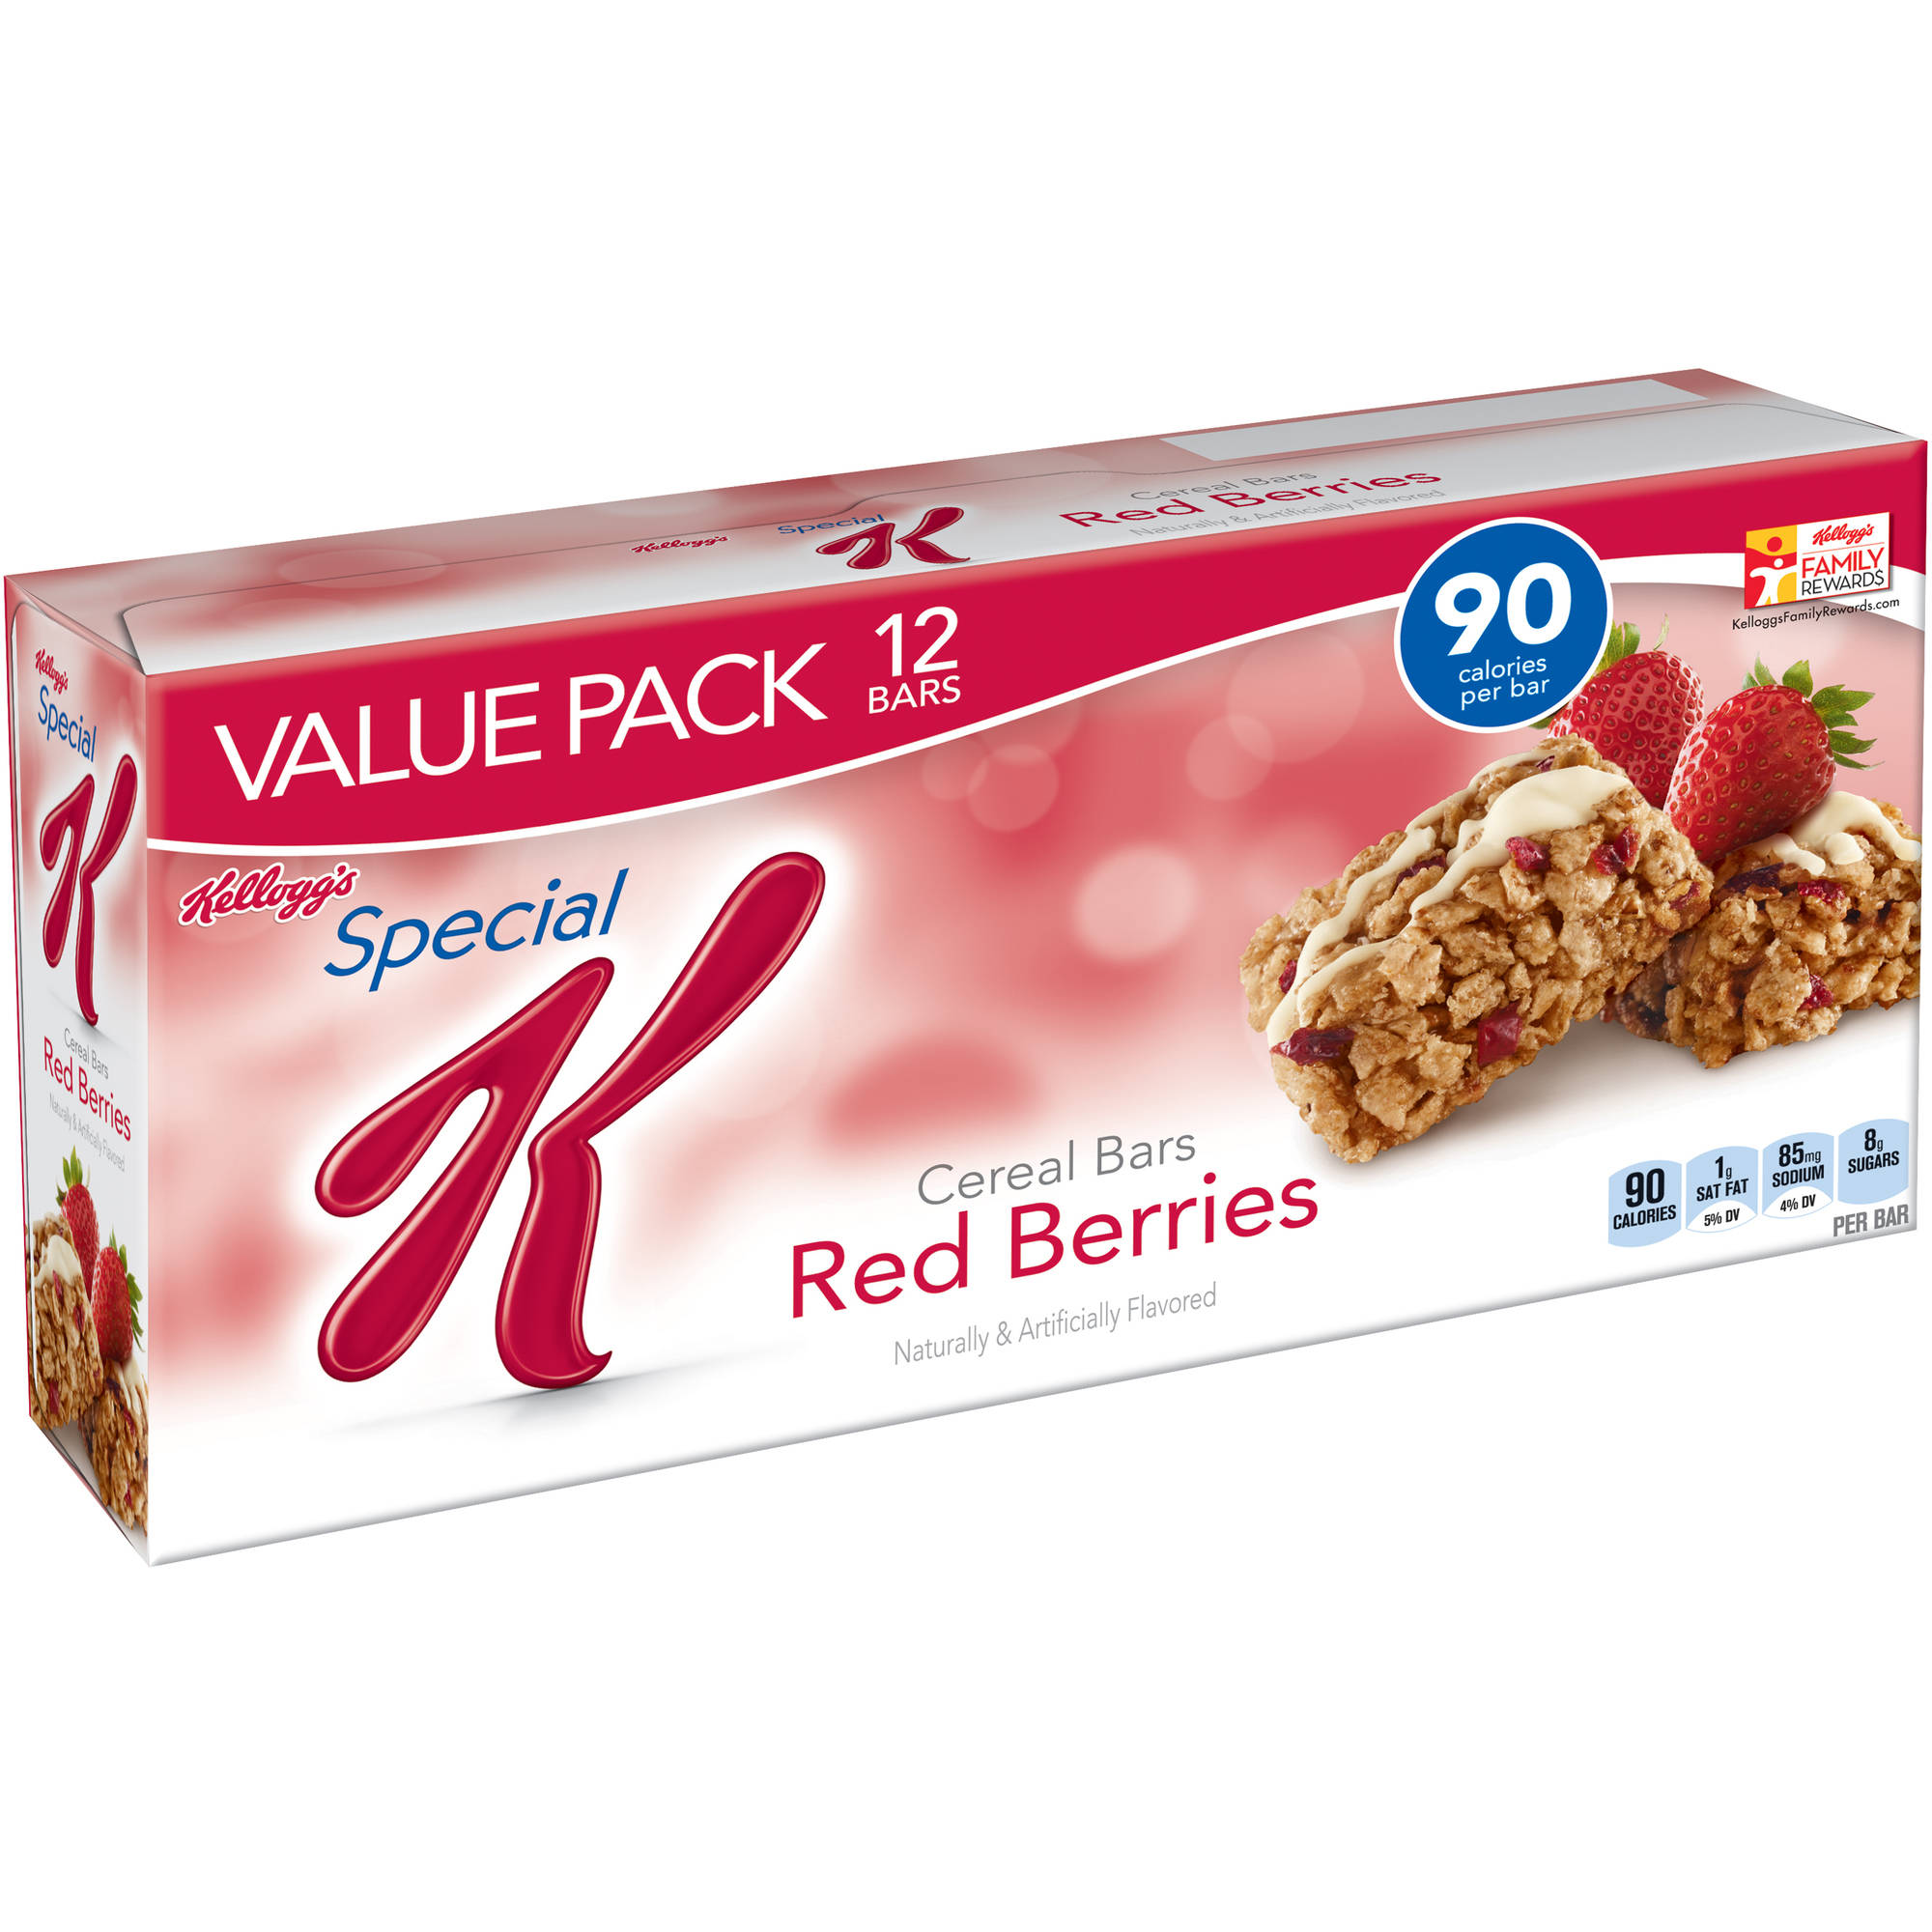 Kellogg's Special K Red Berries Cereal Bars, 12 count, 9.72 oz